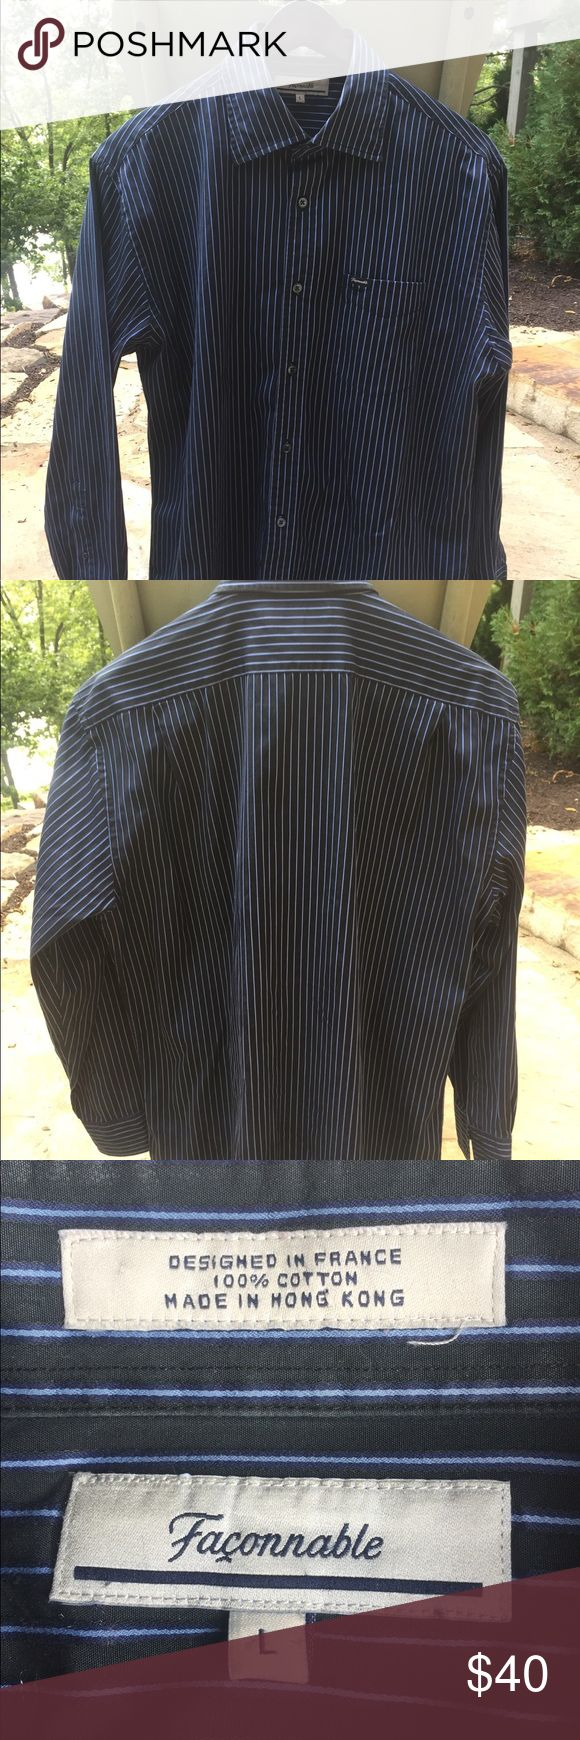 Faconnable Dress Shirt Perfect condition size L Faconnable Shirts Dress Shirts